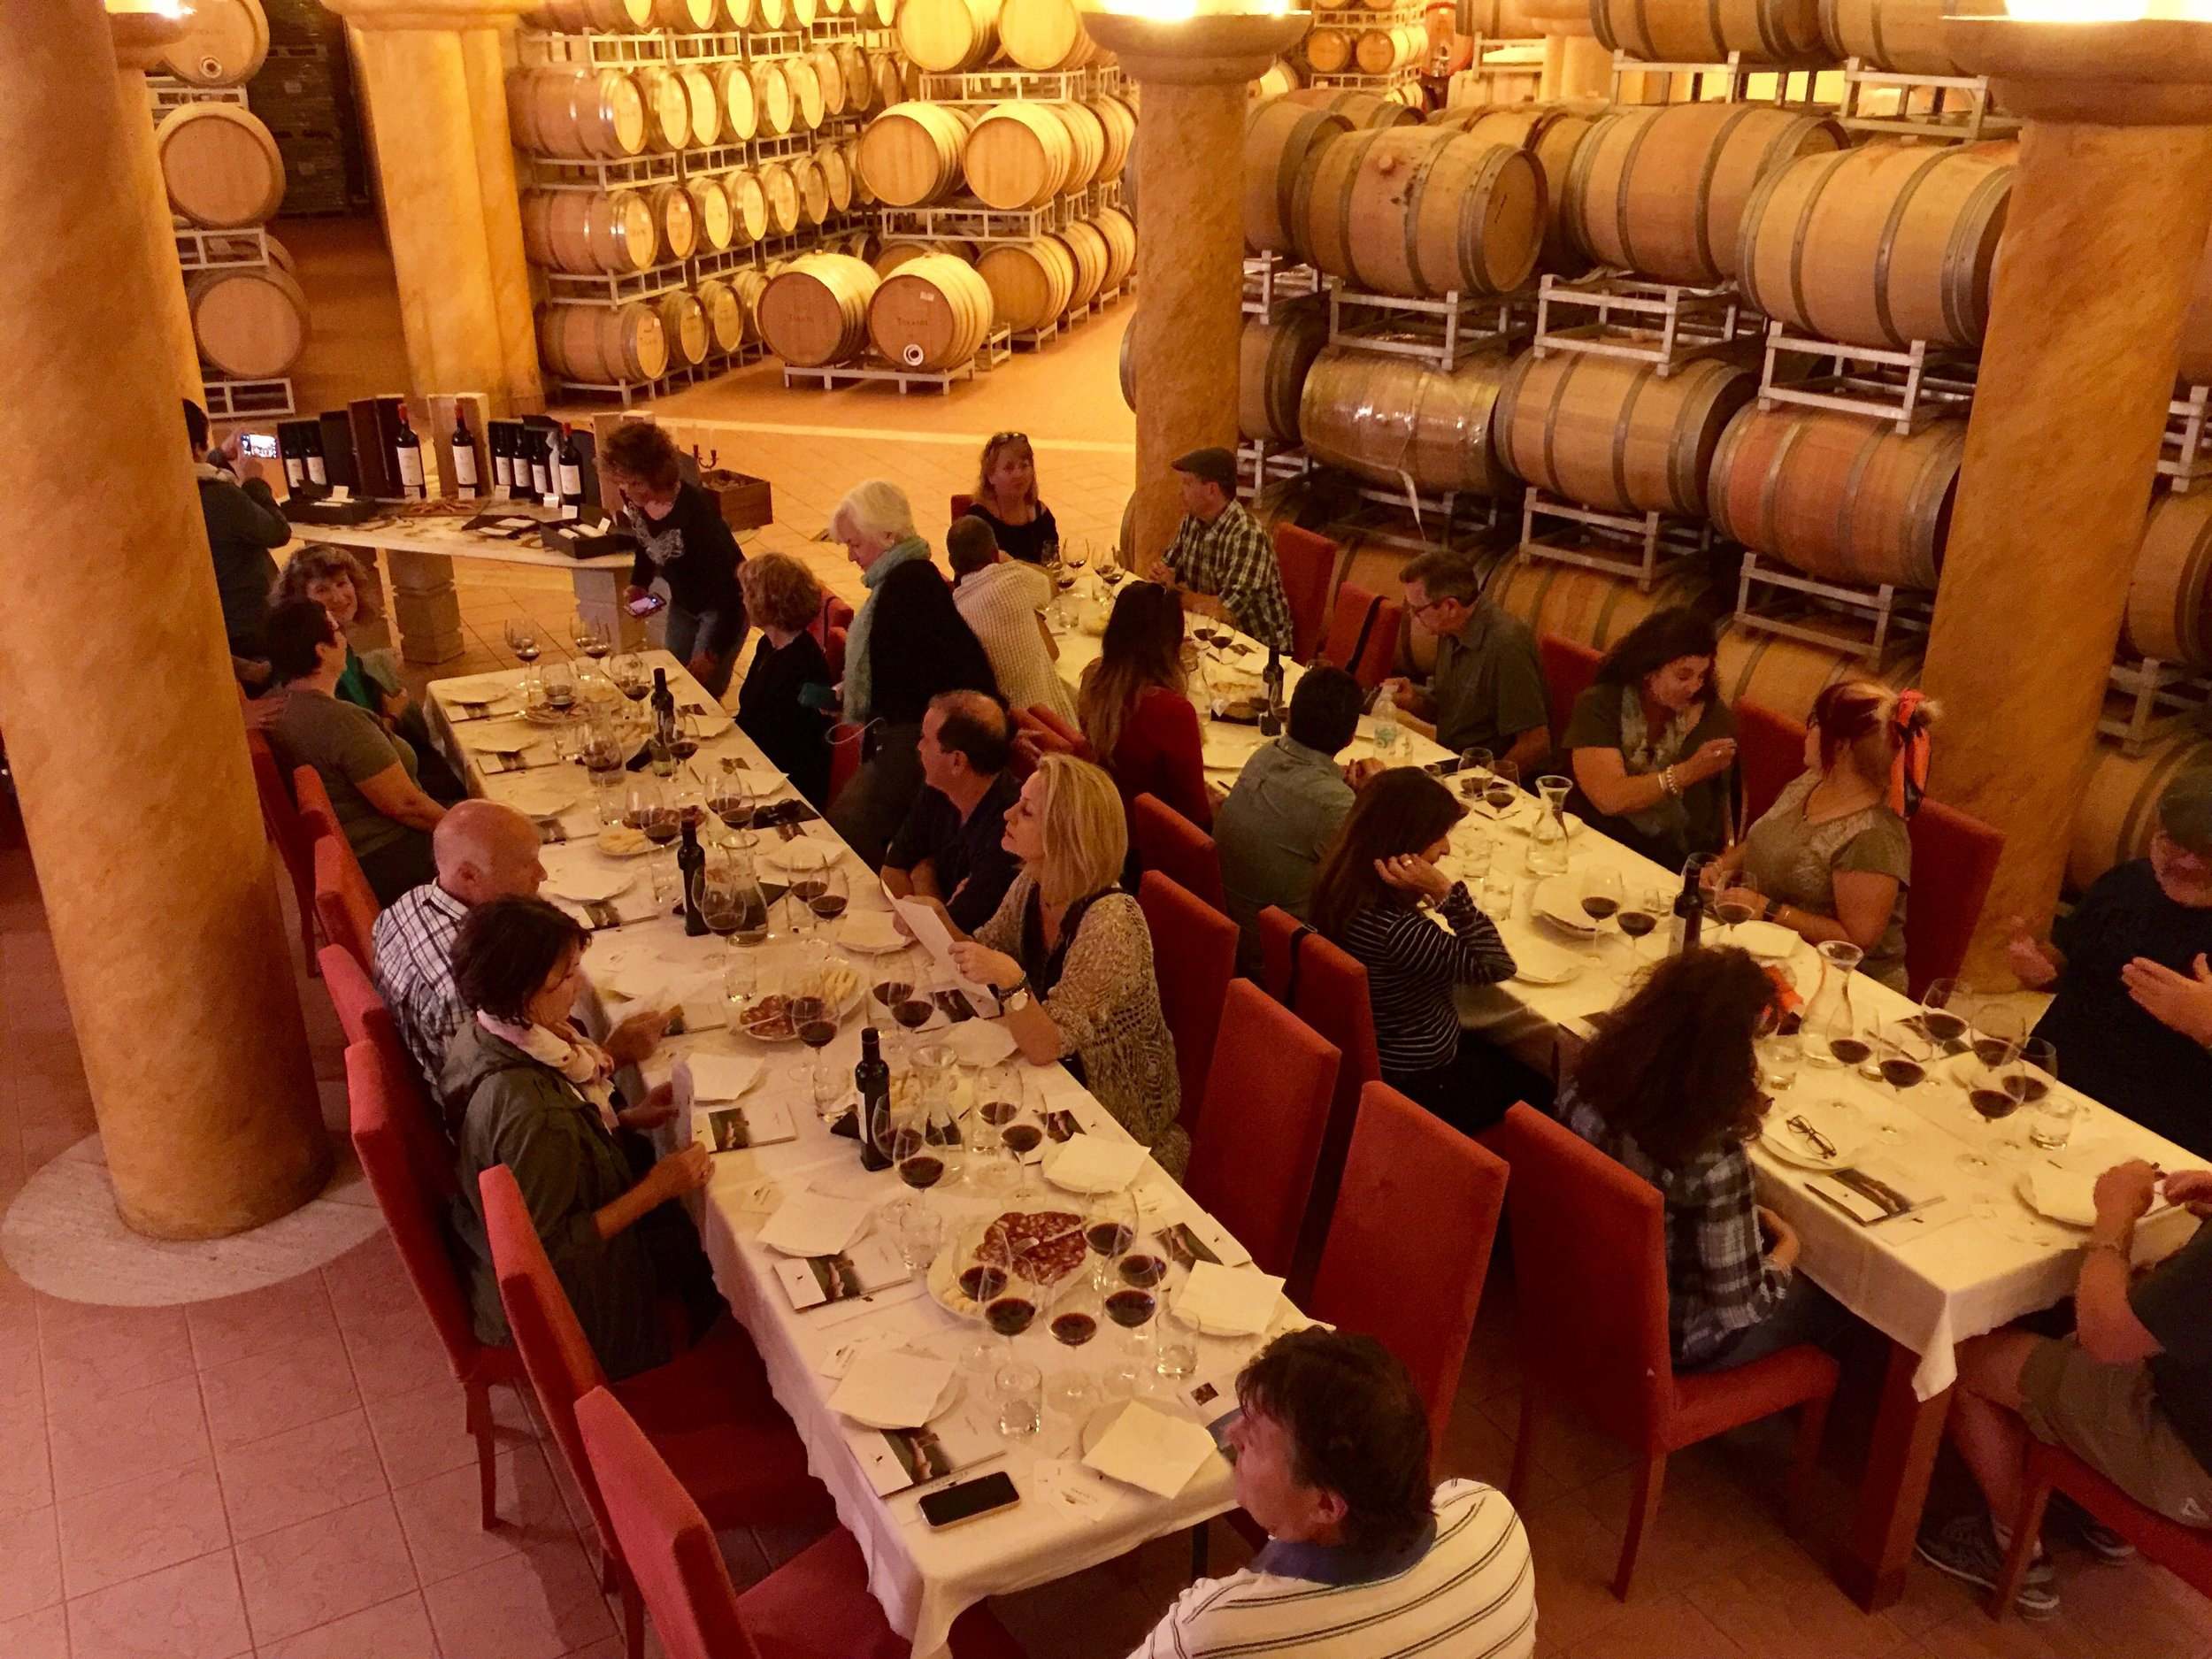 Tasting in the Tolaini winery barrel room.